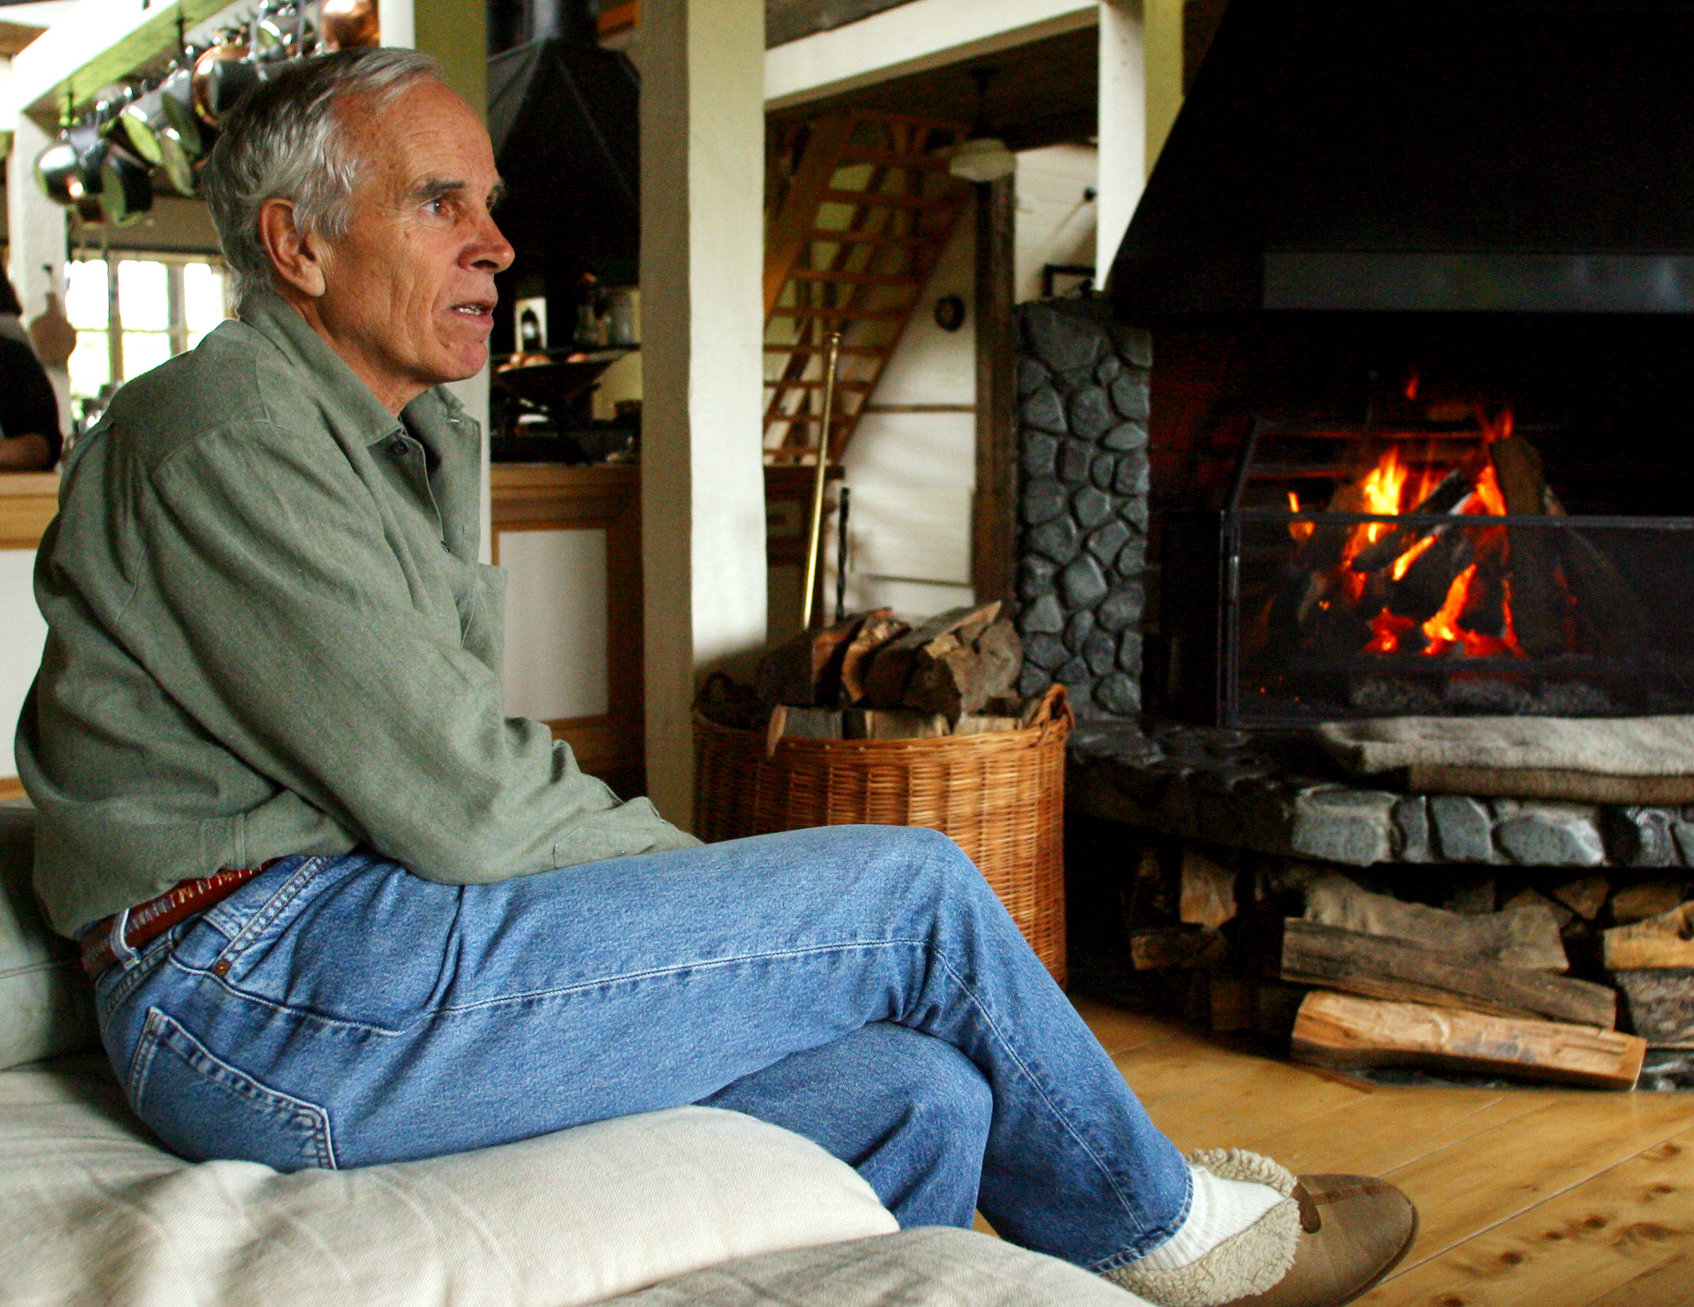 Douglas Tompkins at his home in Pumalin Park in Chile in 2005. Scott Dalton for The New York Times